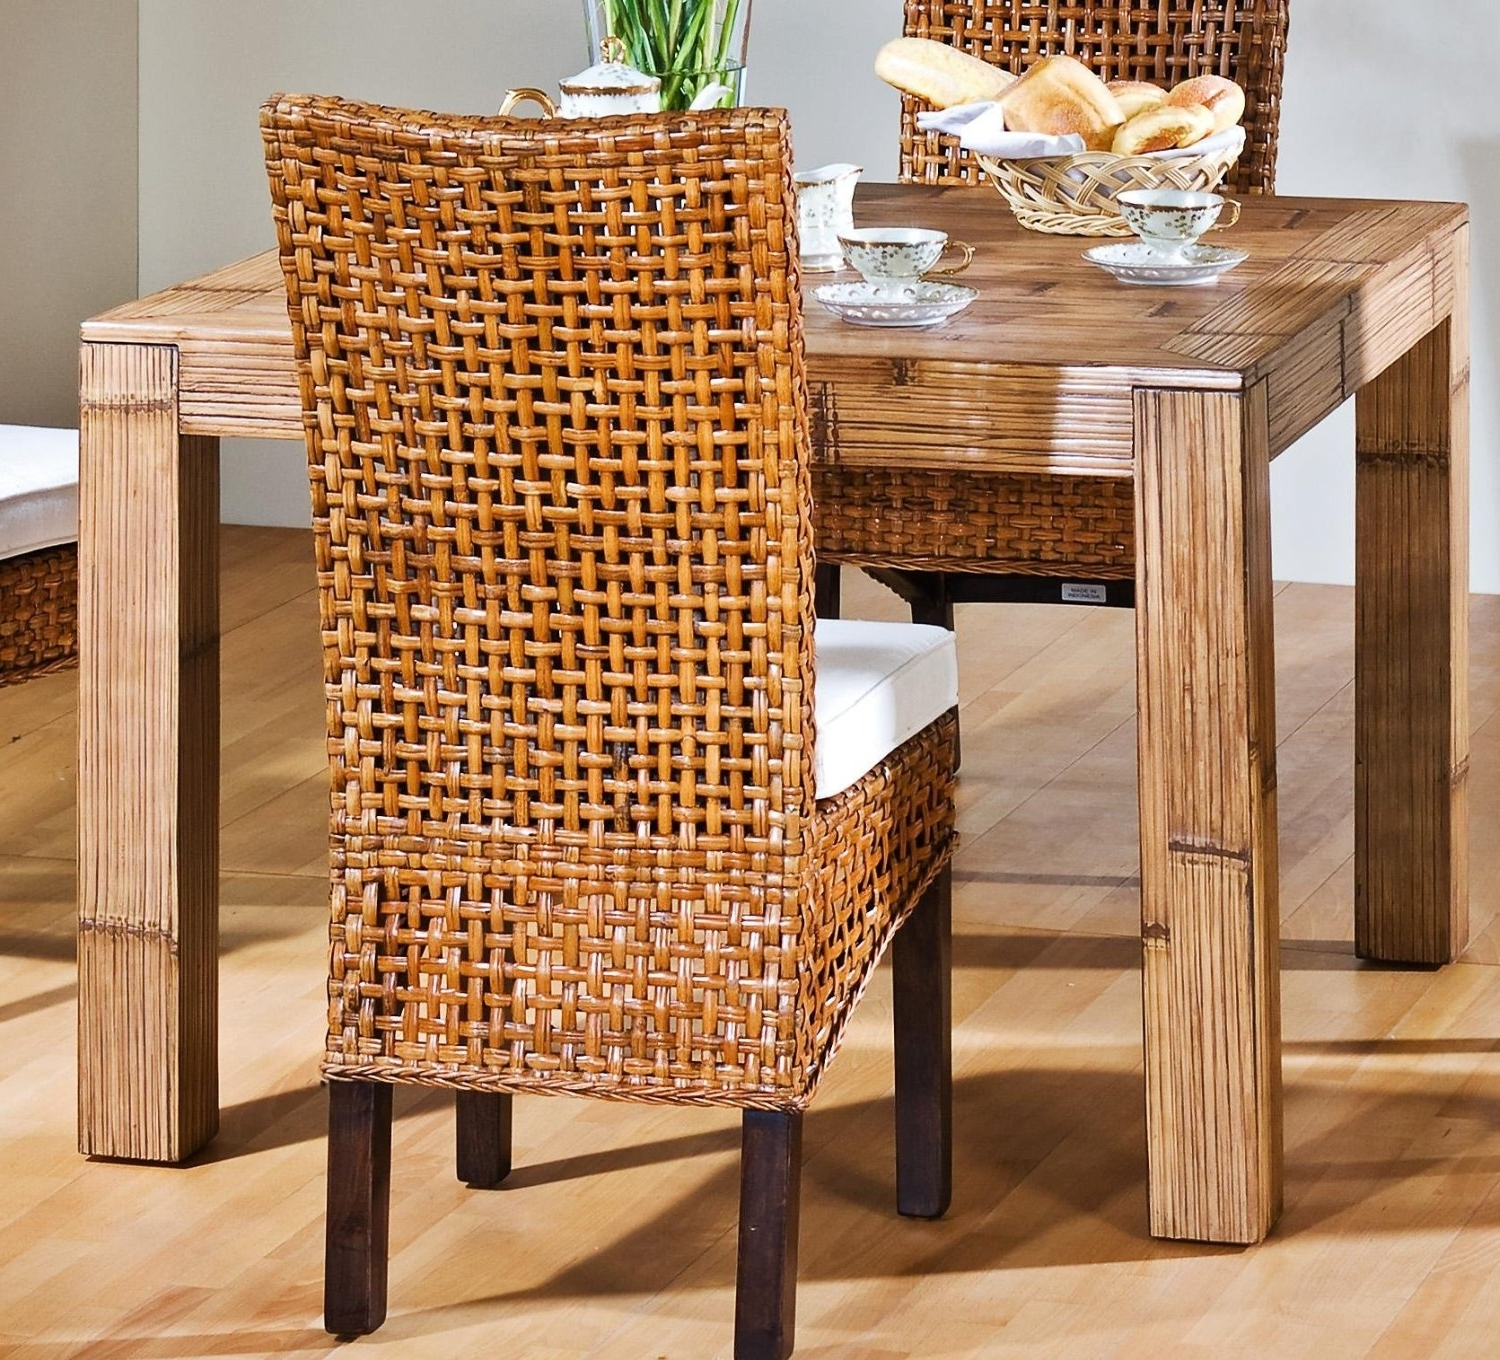 Bamboo Dining Room Chairs For Sale (Image 3 of 7)